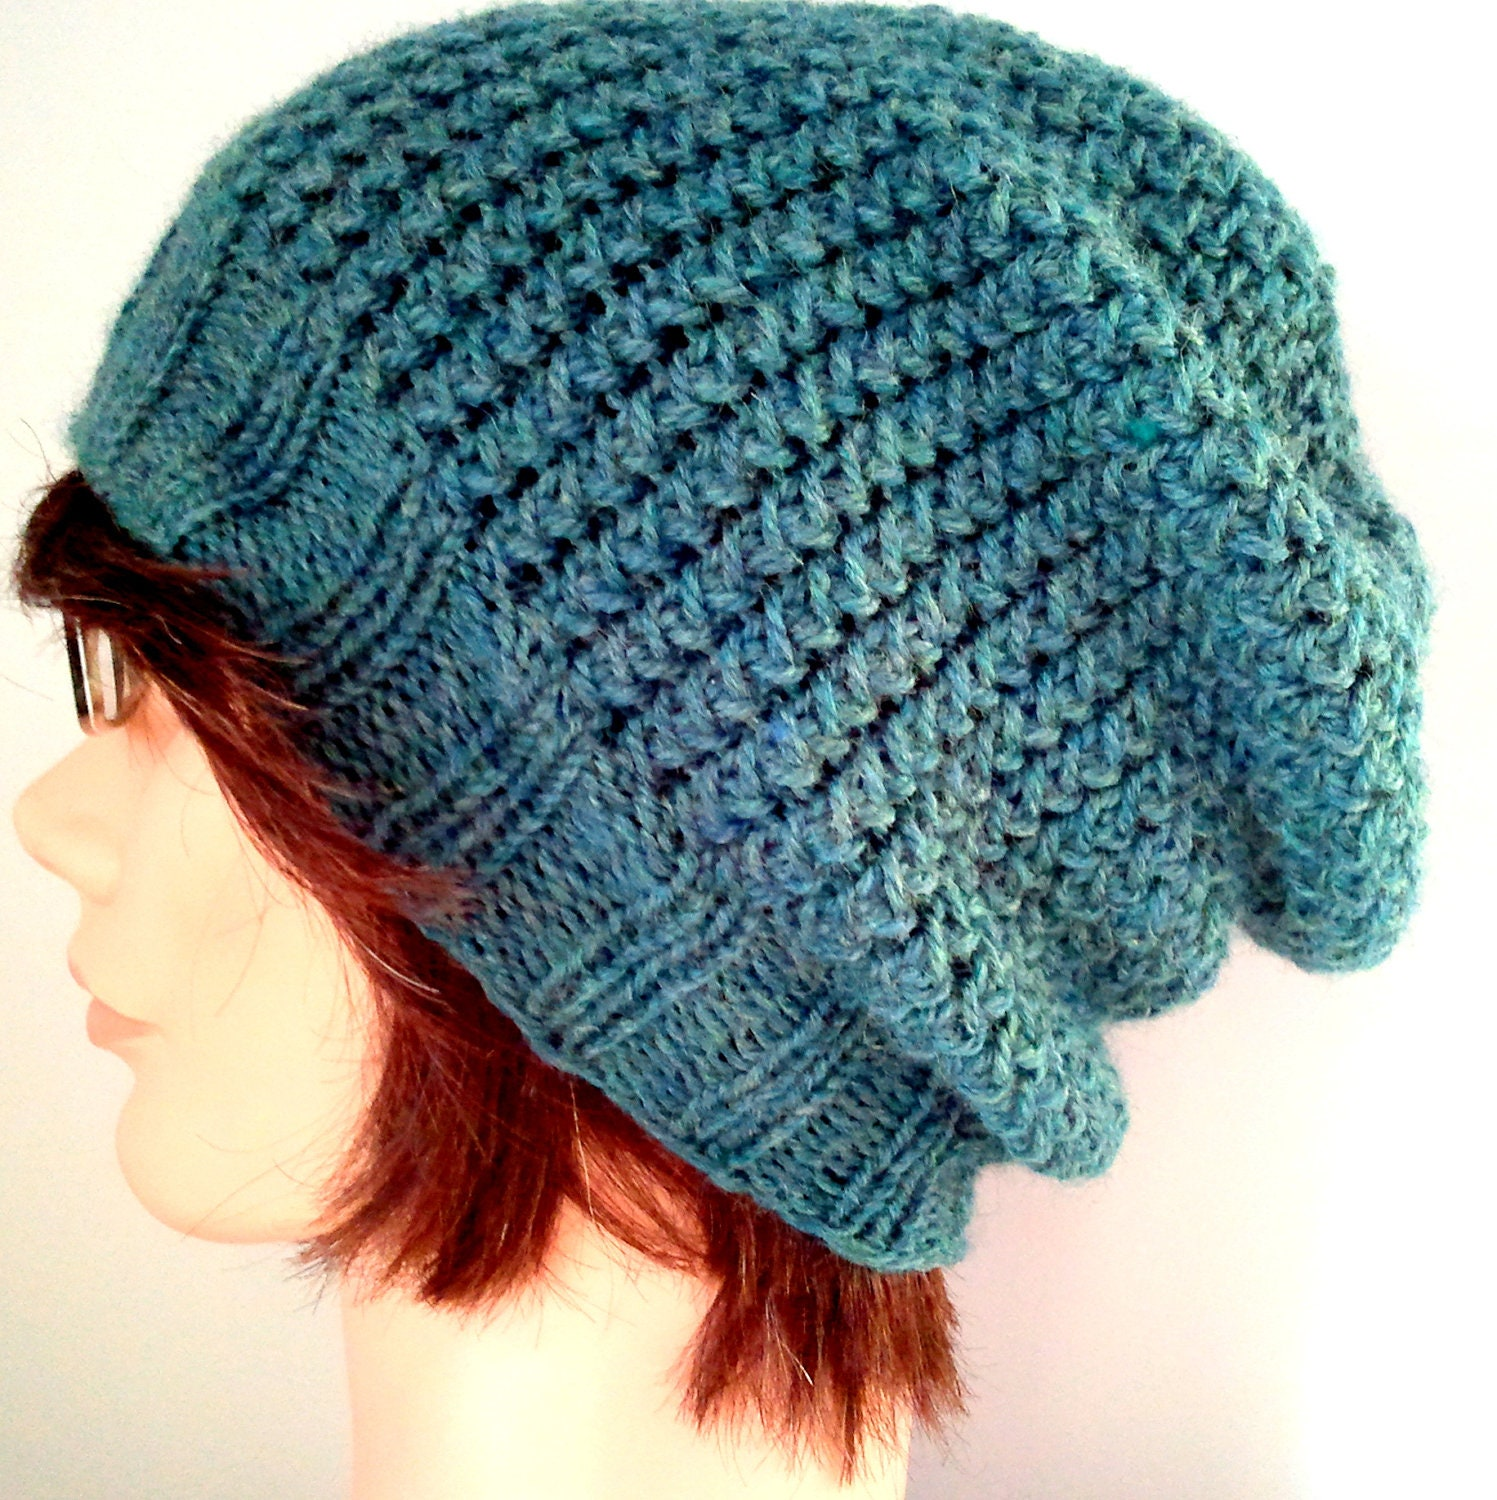 Knit Beanie Pattern Worsted Weight : KNITTING PATTERN // PDF instant download // worsted weight